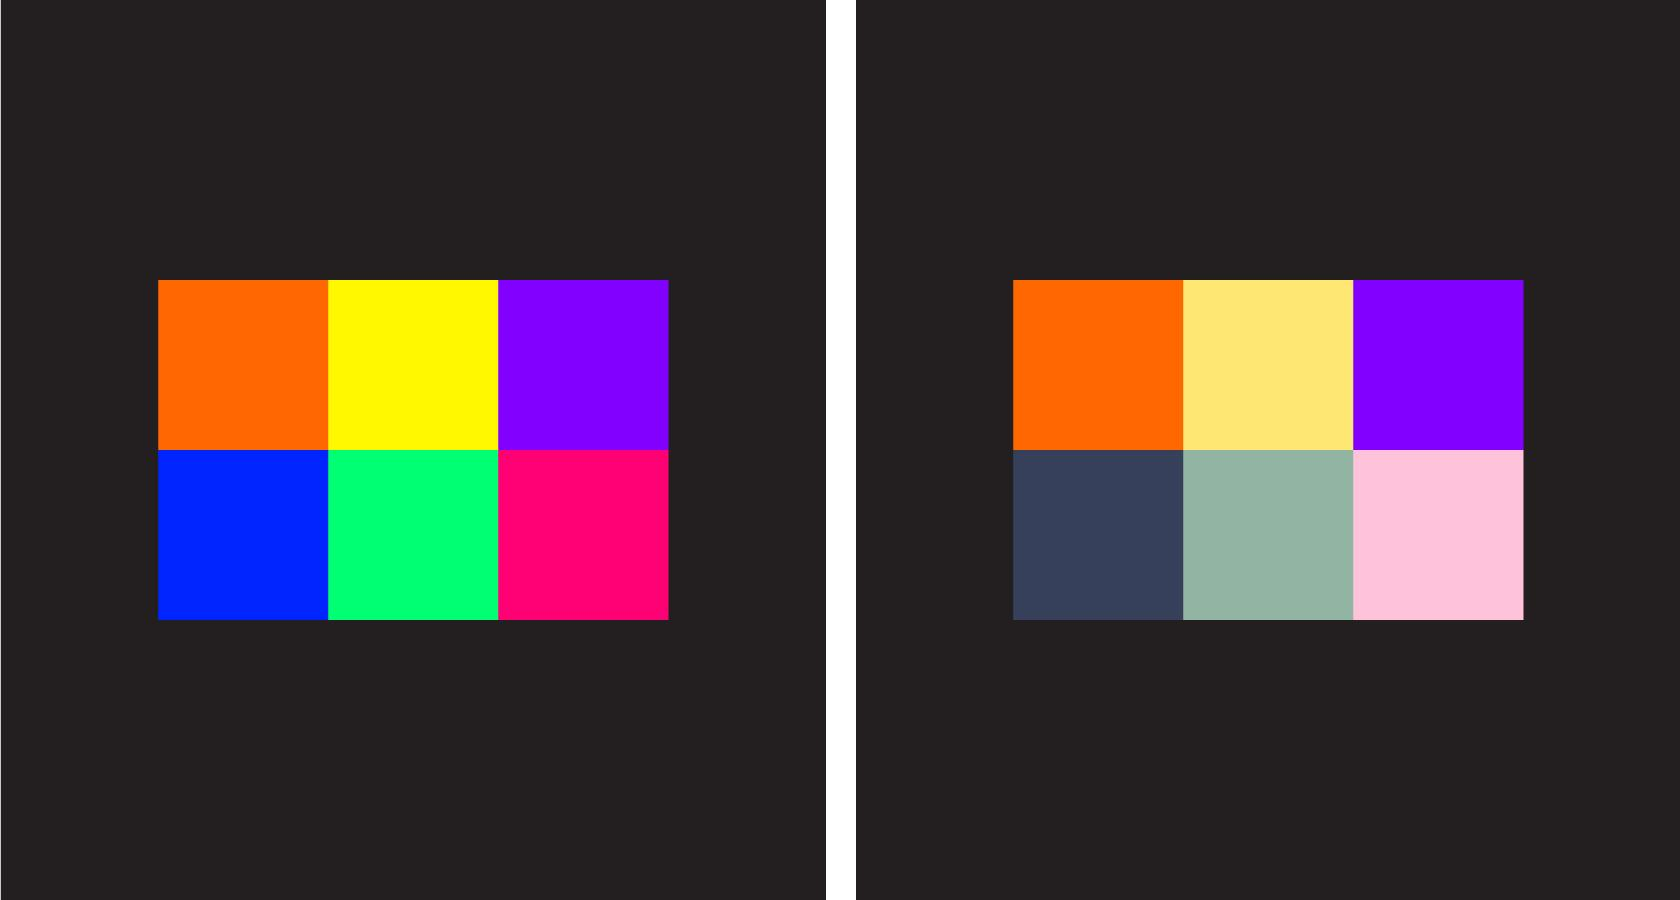 Beautiful color palettes saturation and brightness